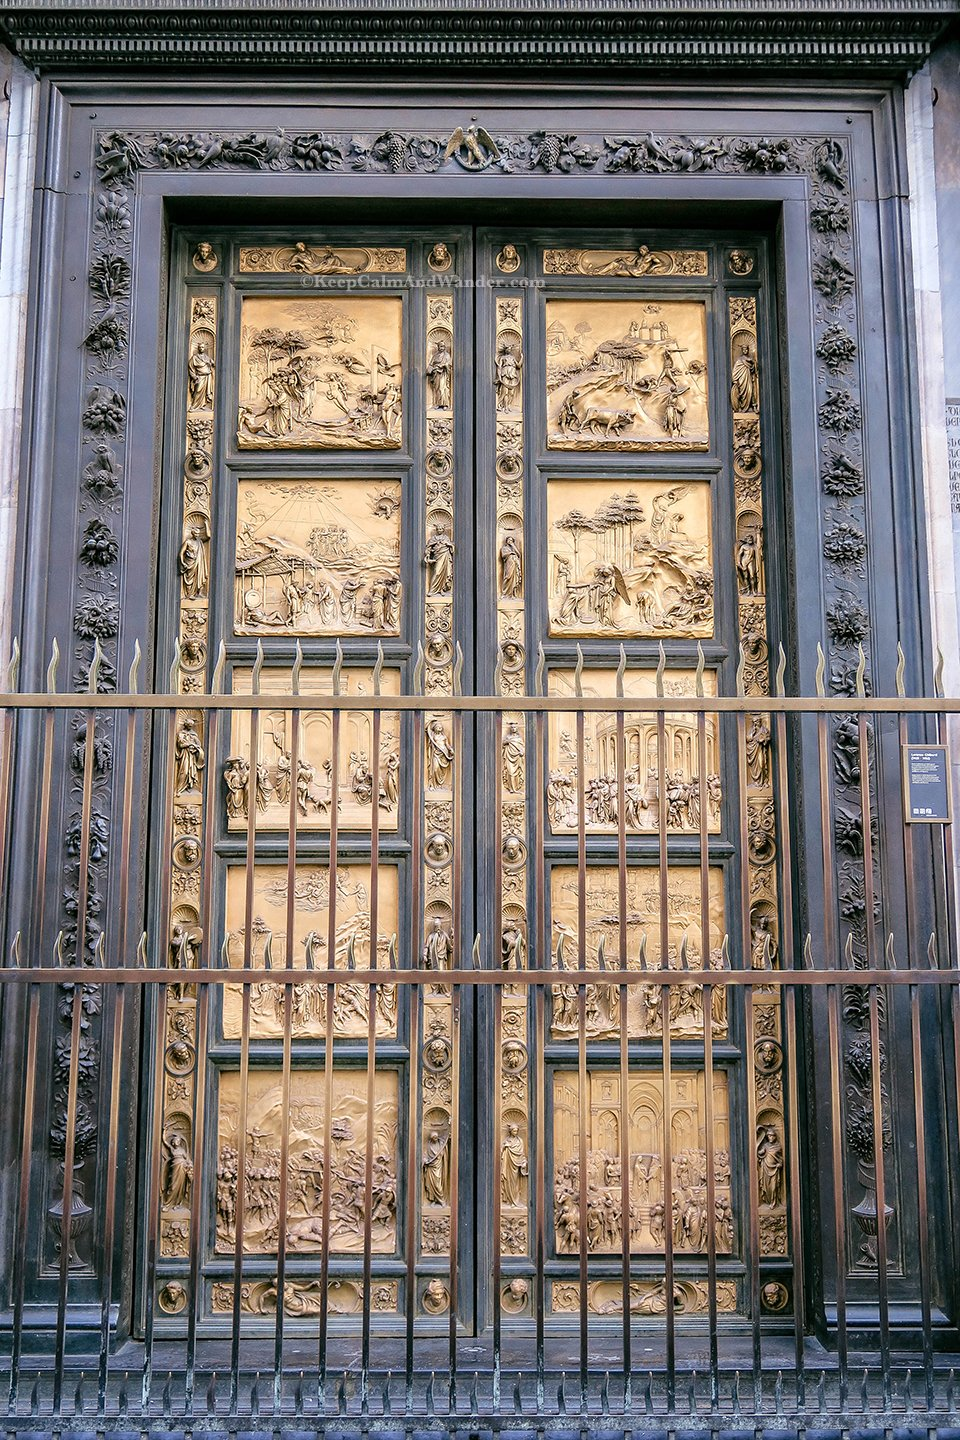 The Gates of Paradise at Florence Baptistry (Italy).